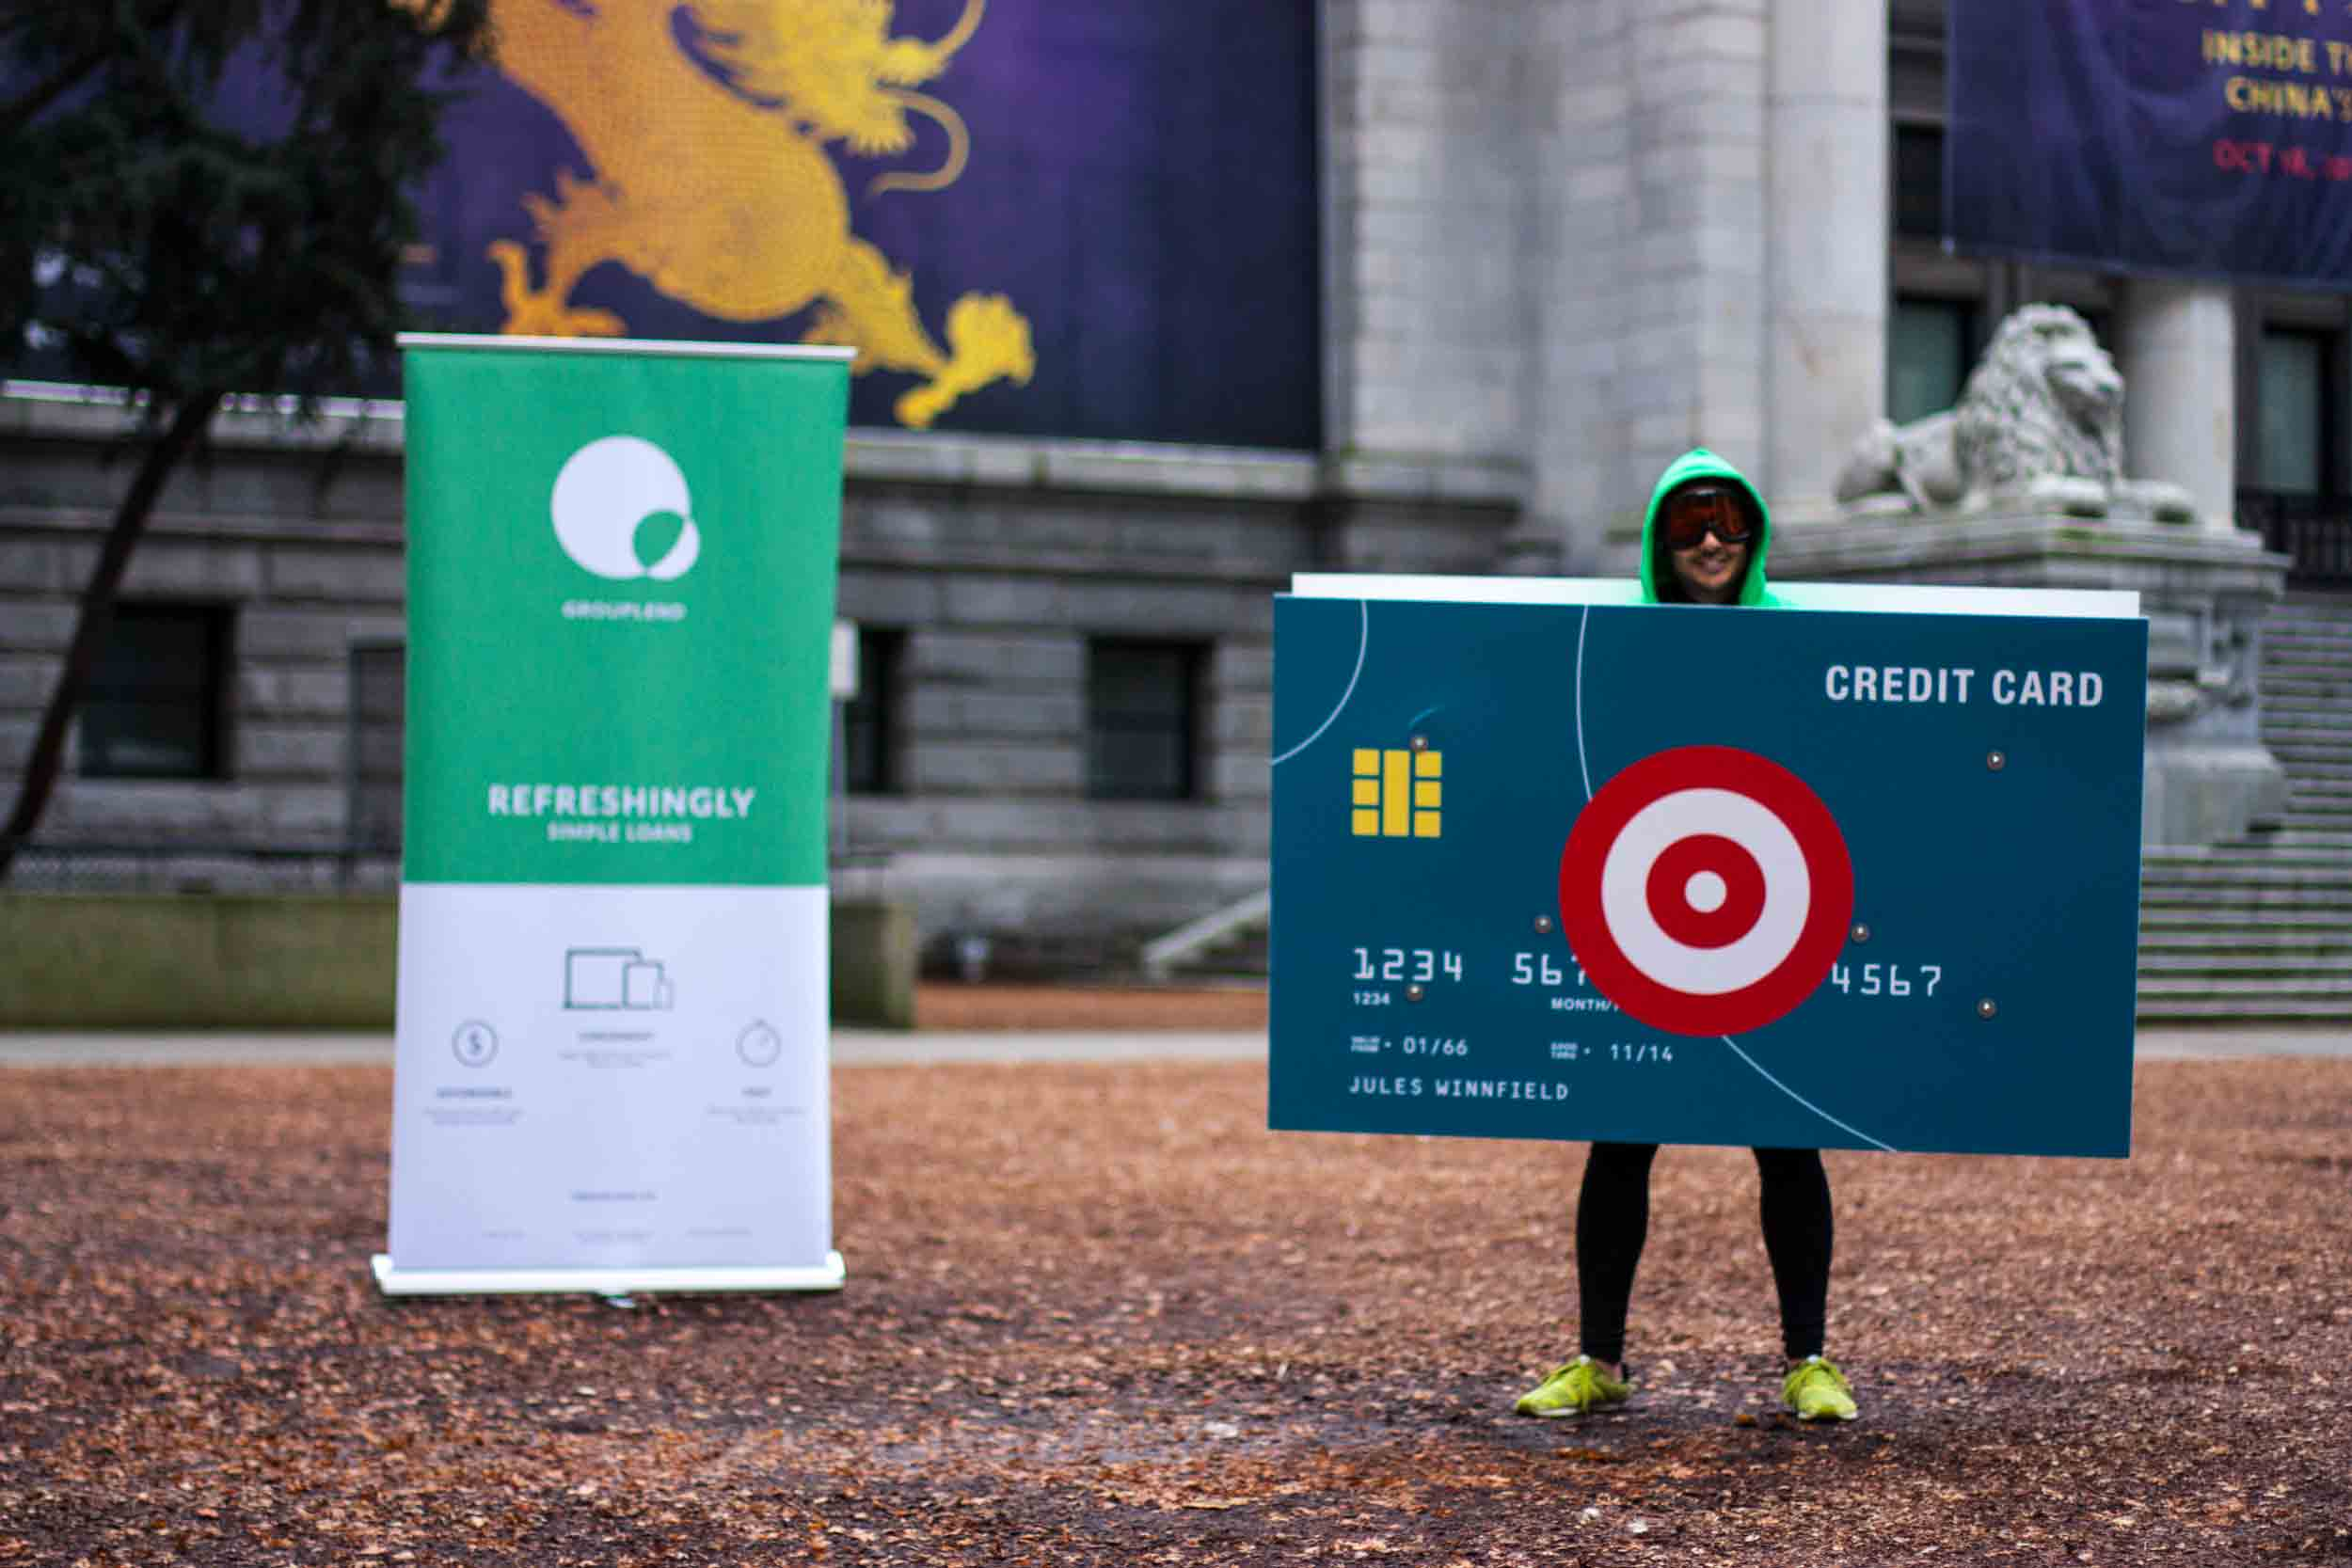 Grow Financial's CEO in credit card costume at the Vancouver Art Gallery ready to be pummelled by water balloons as part of an advertising event — by Yagnyuk.